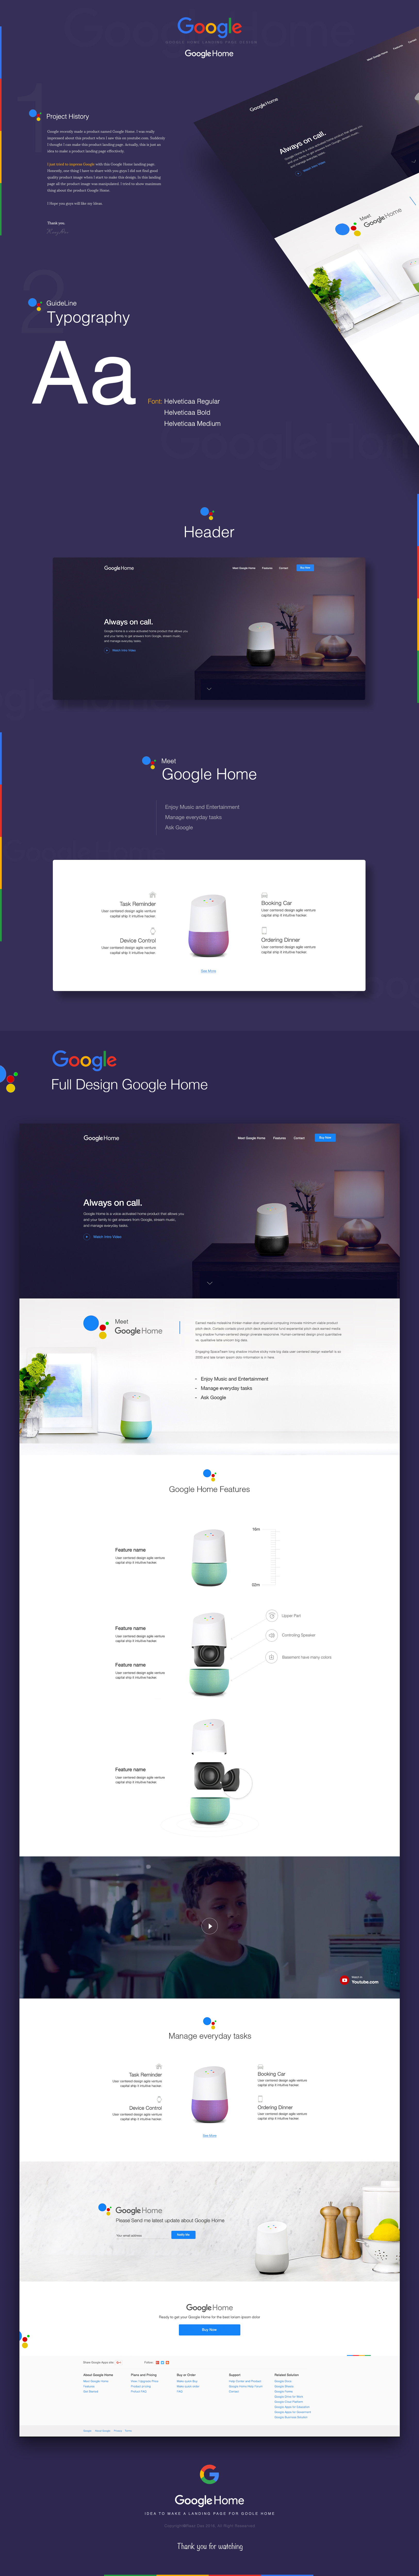 Google Home Landing Page Concept on Behance